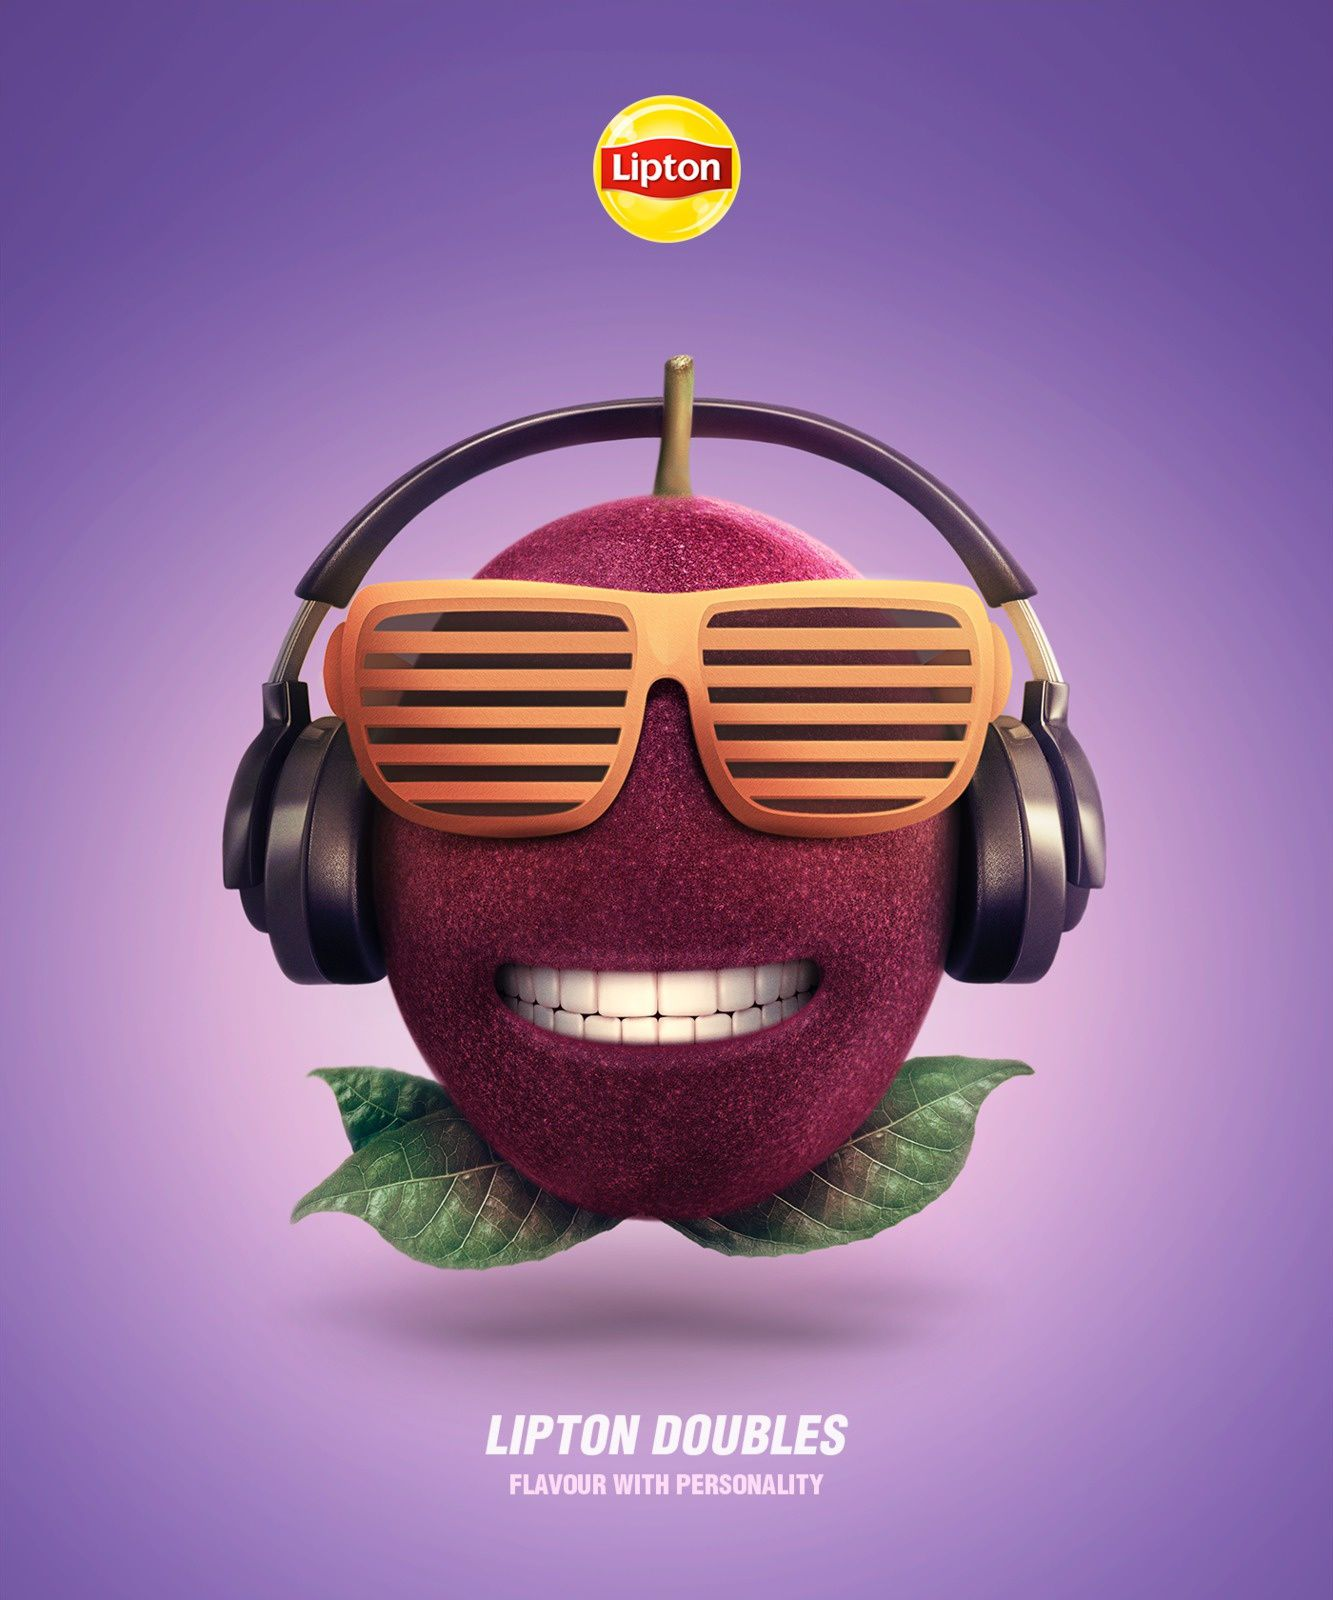 """Lipton - """"Lipton doubles. Flavour with personality"""" (thé aromatisé) I Agence : Isobar, Portugal (juillet 2017)"""